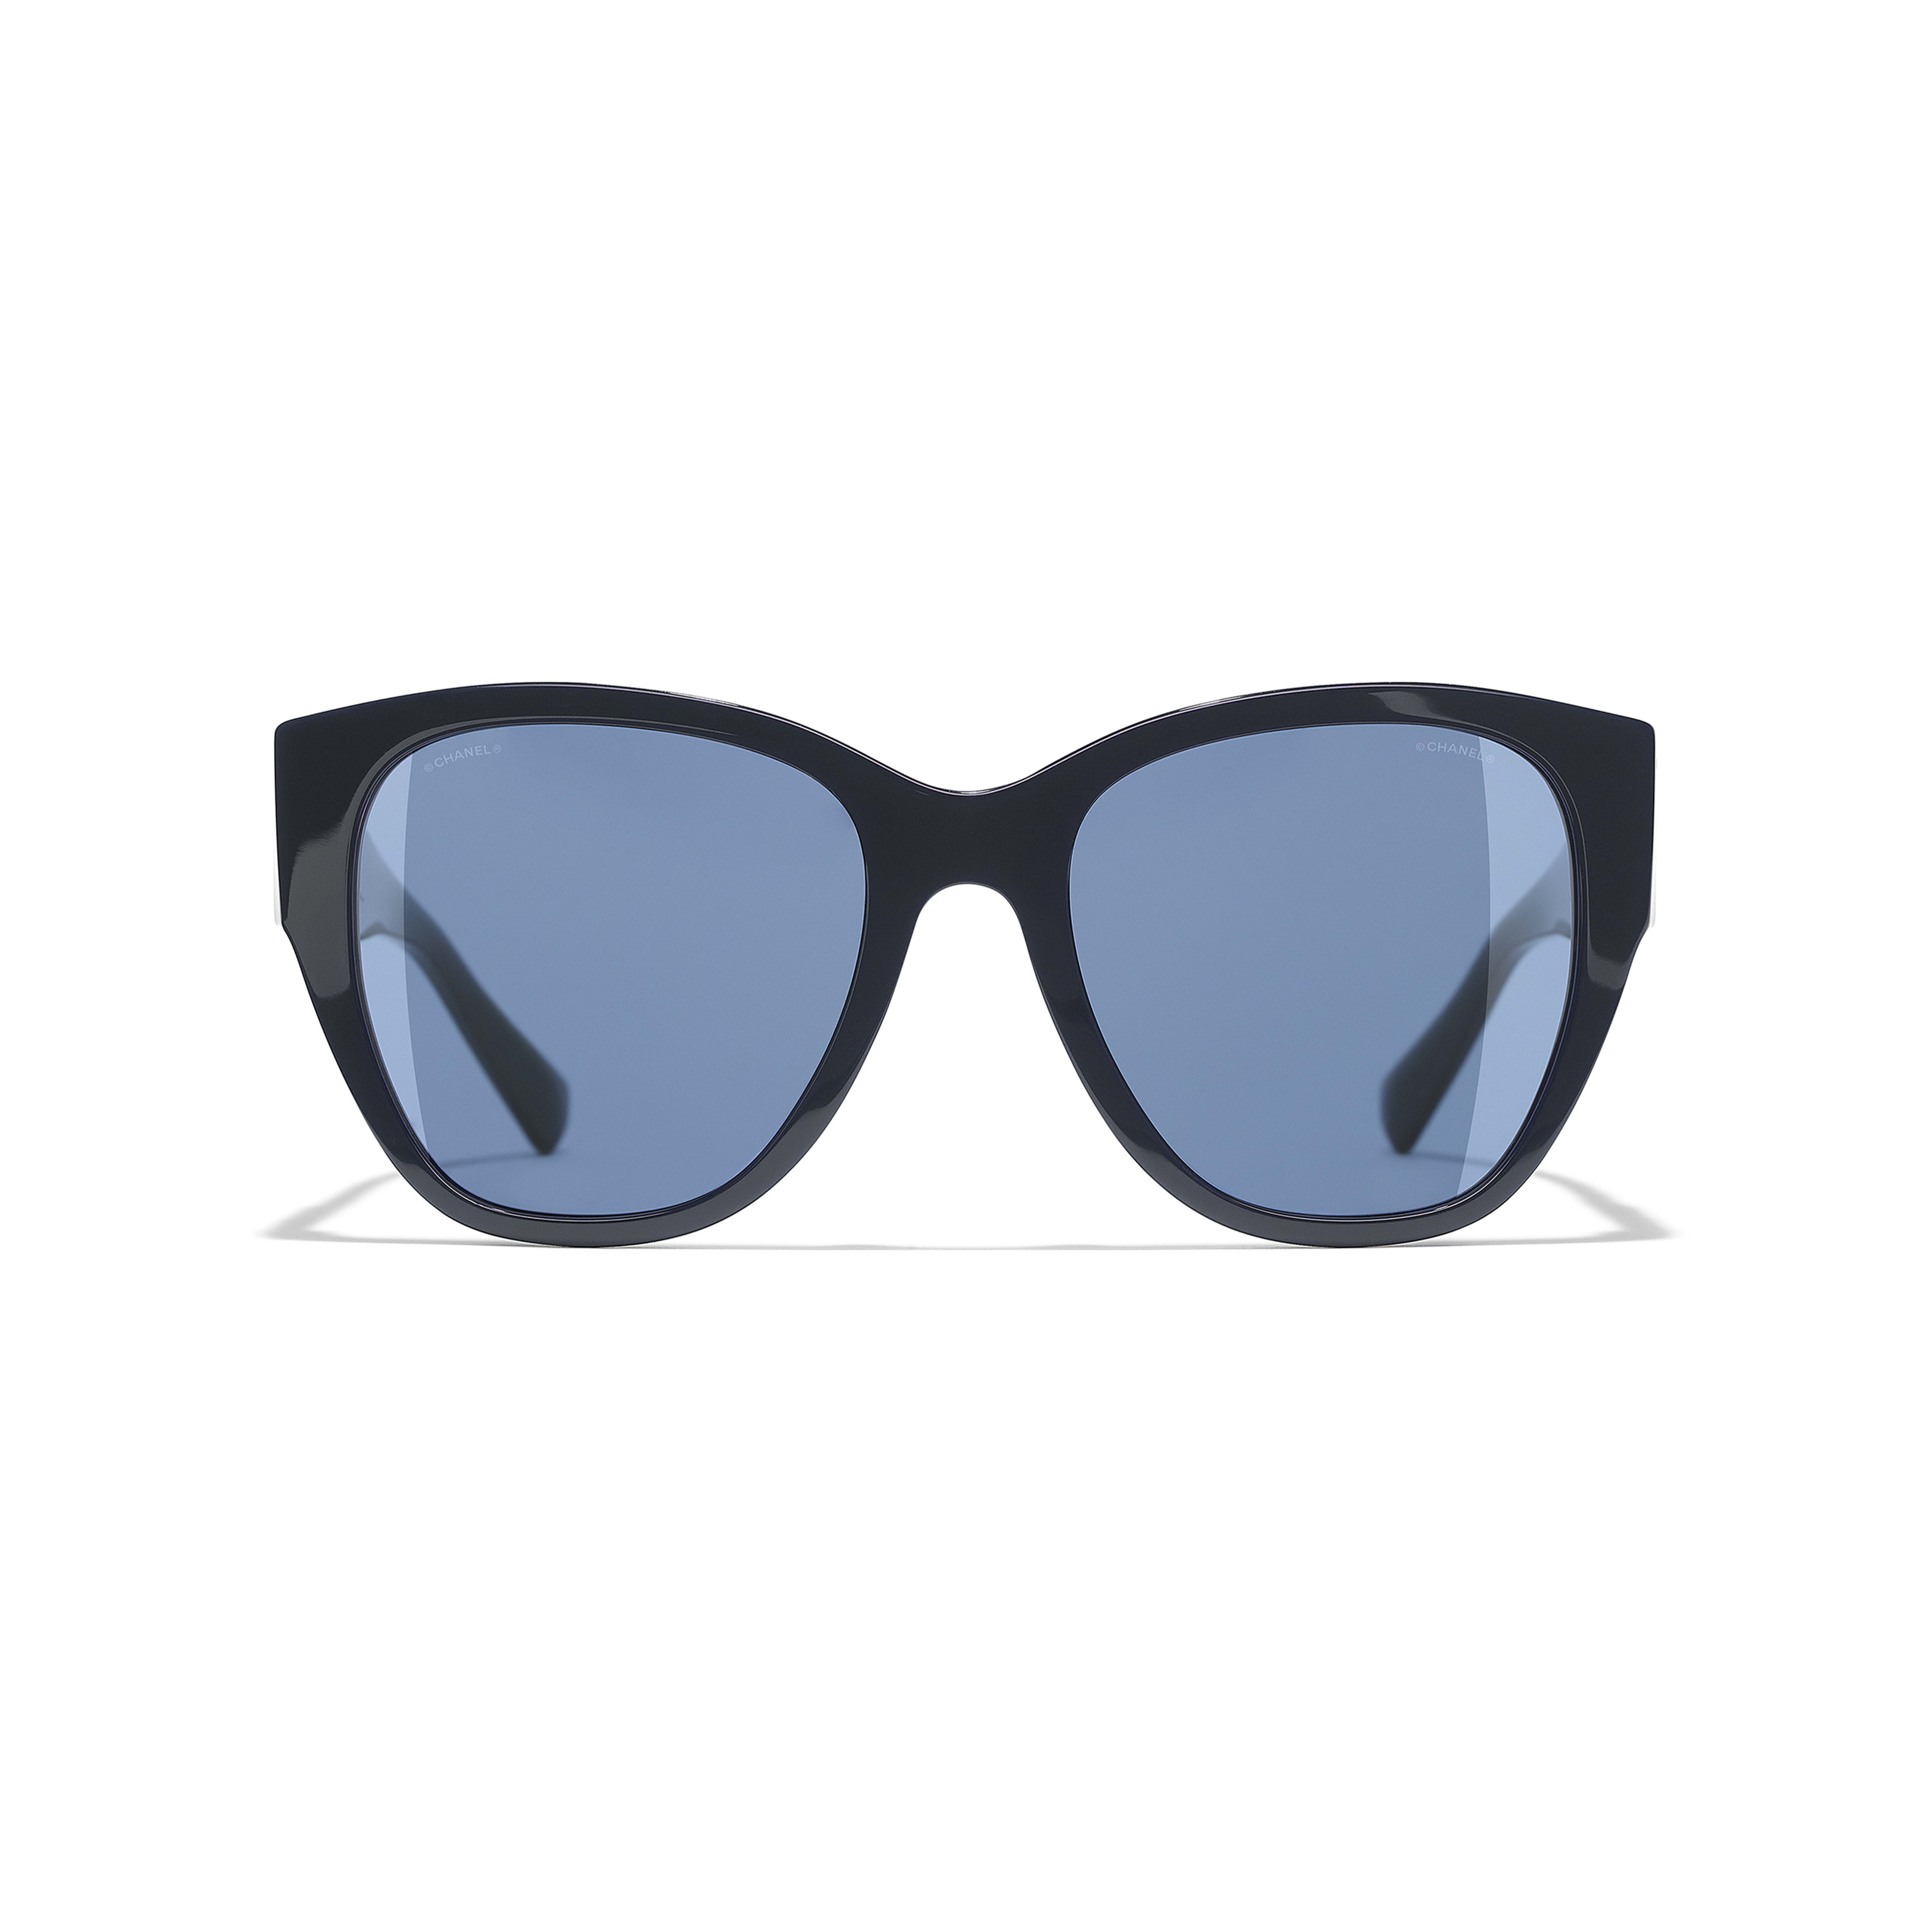 Butterfly Sunglasses - Dark Blue - Acetate - Alternative view - see full sized version